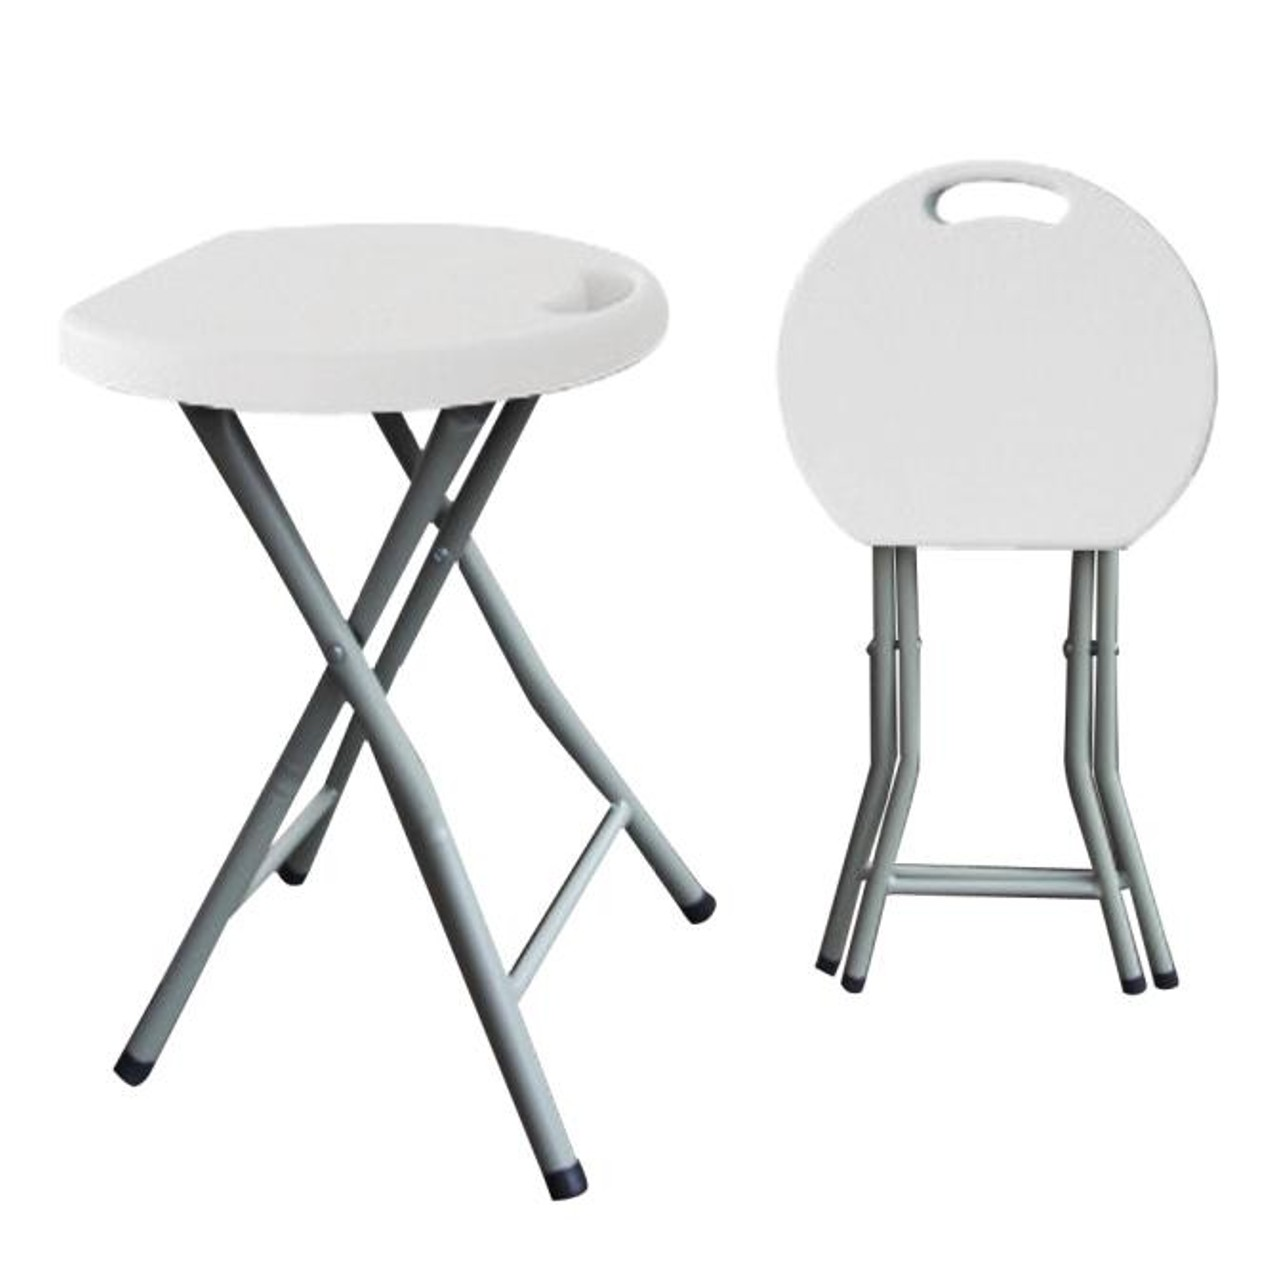 Surprising Heavy Duty 400Lb Capacity Light Weight Metal And Plastic Pabps2019 Chair Design Images Pabps2019Com